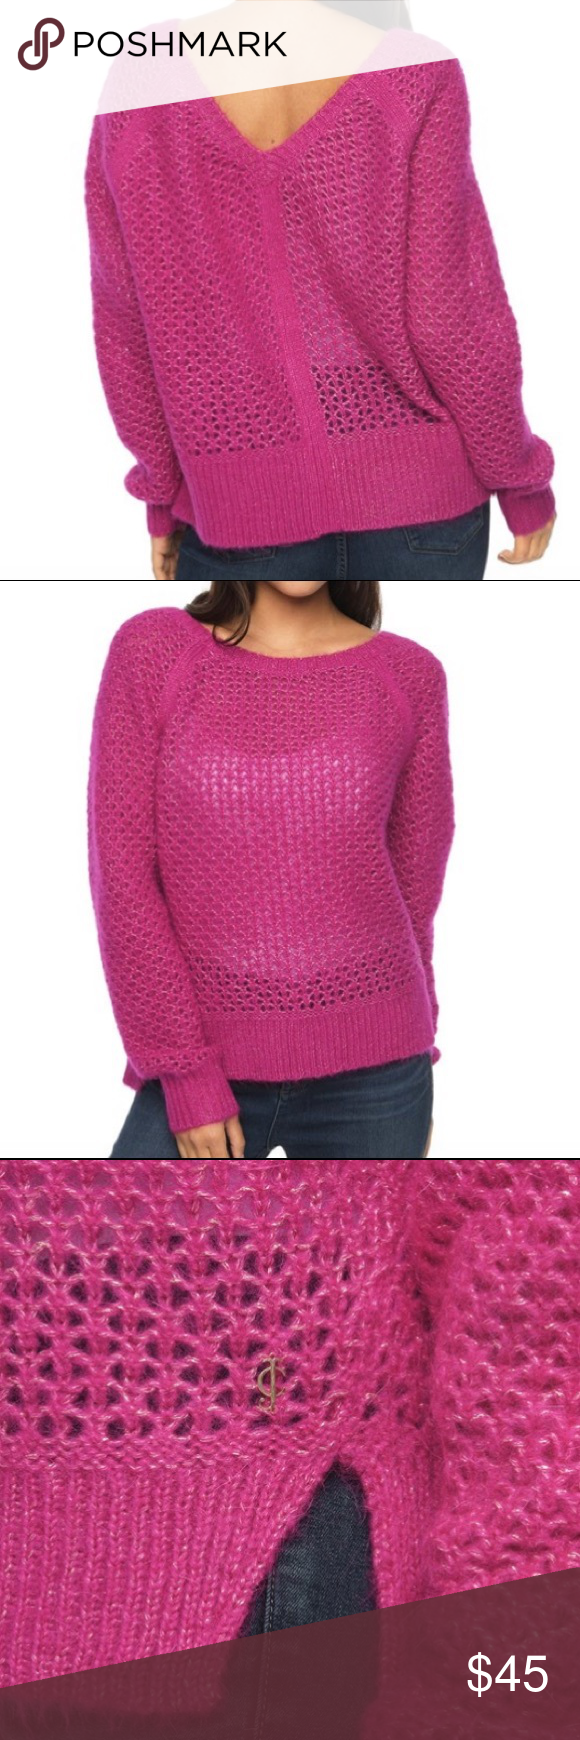 """Oversized Juicy Sweater This beauty has a touch of sparkle. High low hem and back cutout add appeal. Round neckline, long sleeves, side slits. 20"""" from shoulder to hem. 35% mohair 35% mercerized merino wool 30% lurex. Dry clean. No trades. Juicy Couture Sweaters Crew & Scoop Necks"""